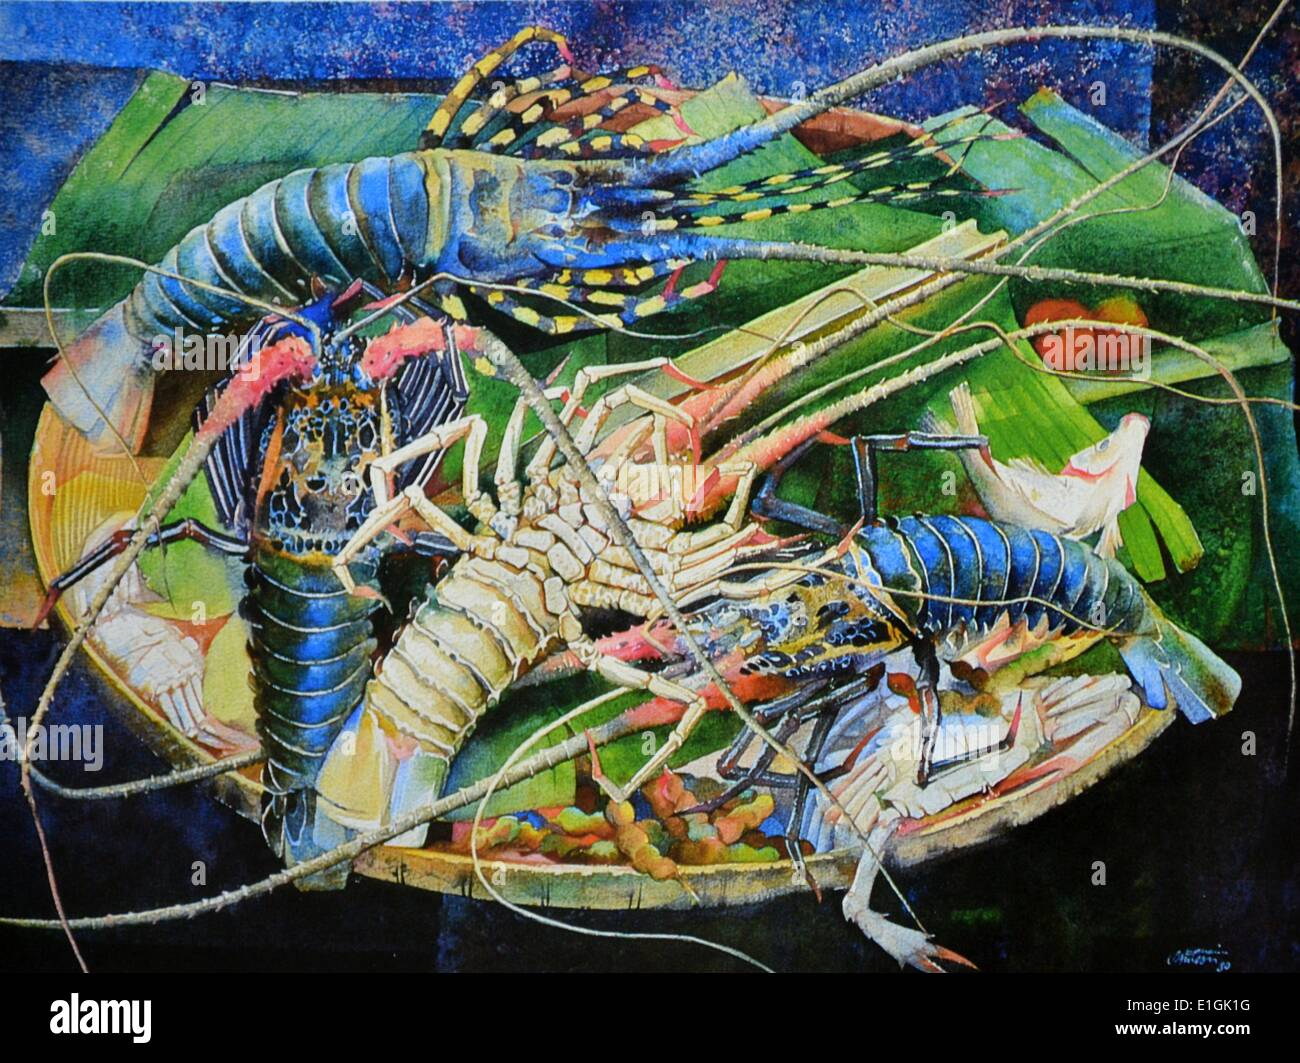 Ephraim Samson, Still Life with Lobsters, 1980. Watercolour. - Stock Image